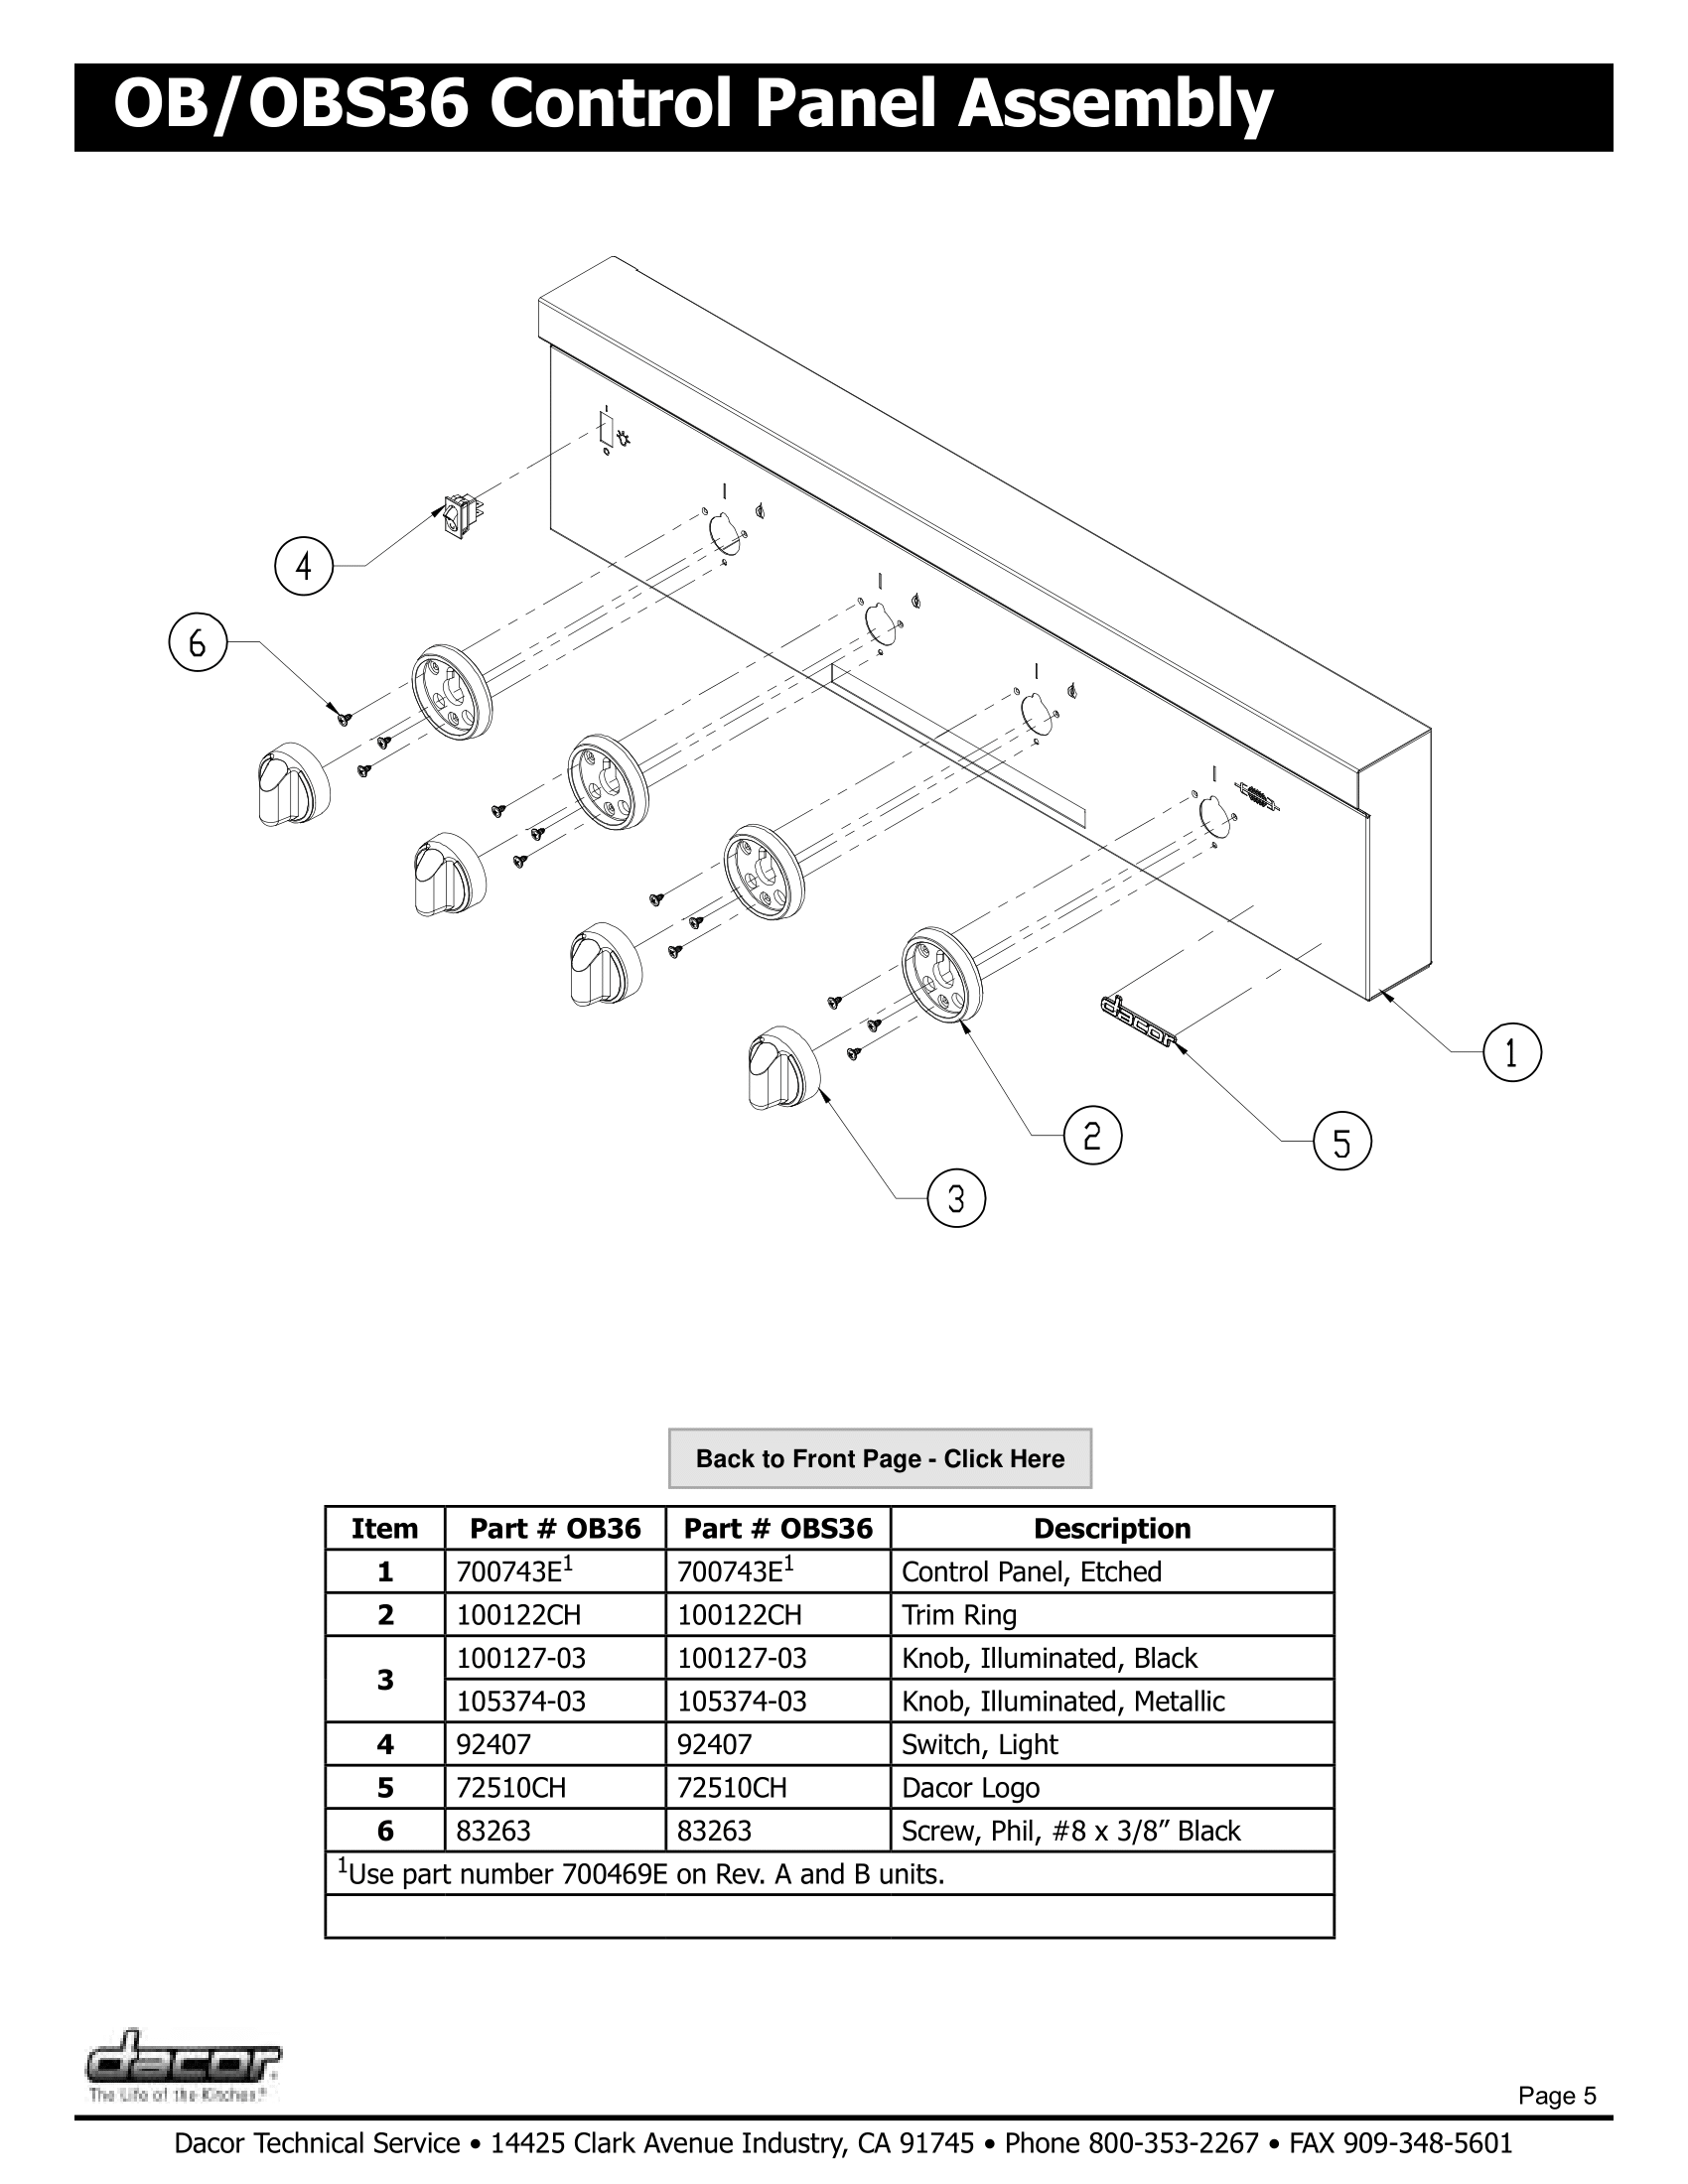 Dacor OBS36 Control Panel Assembly Schematic